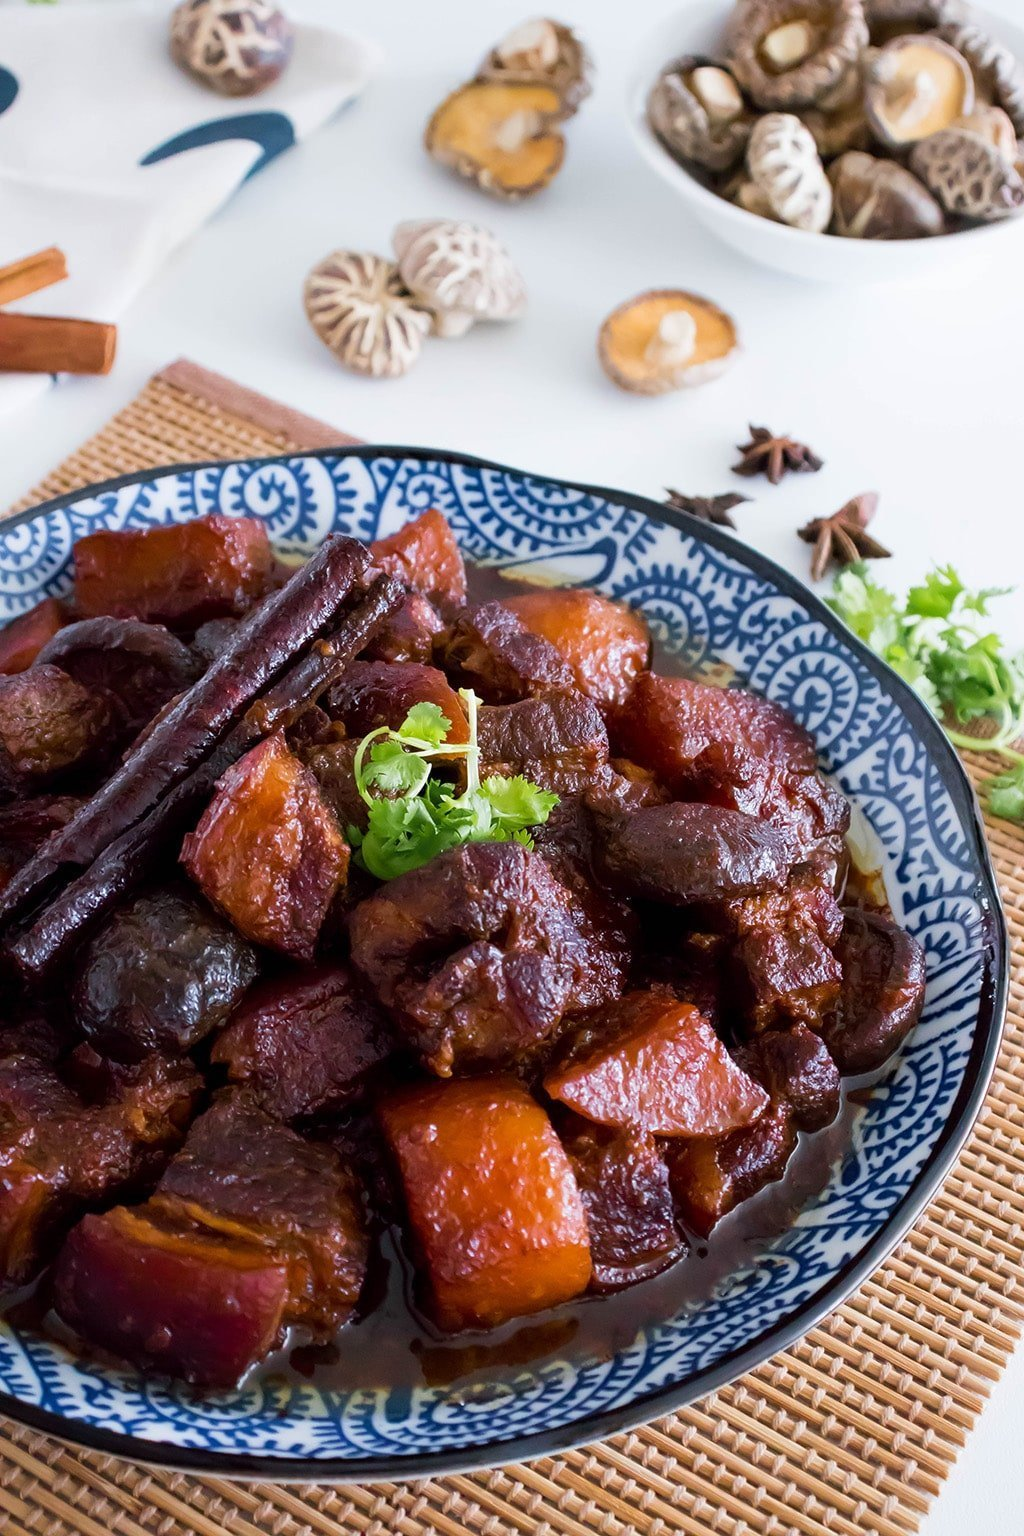 braised pork belly in soy sauce (tau yu bak)